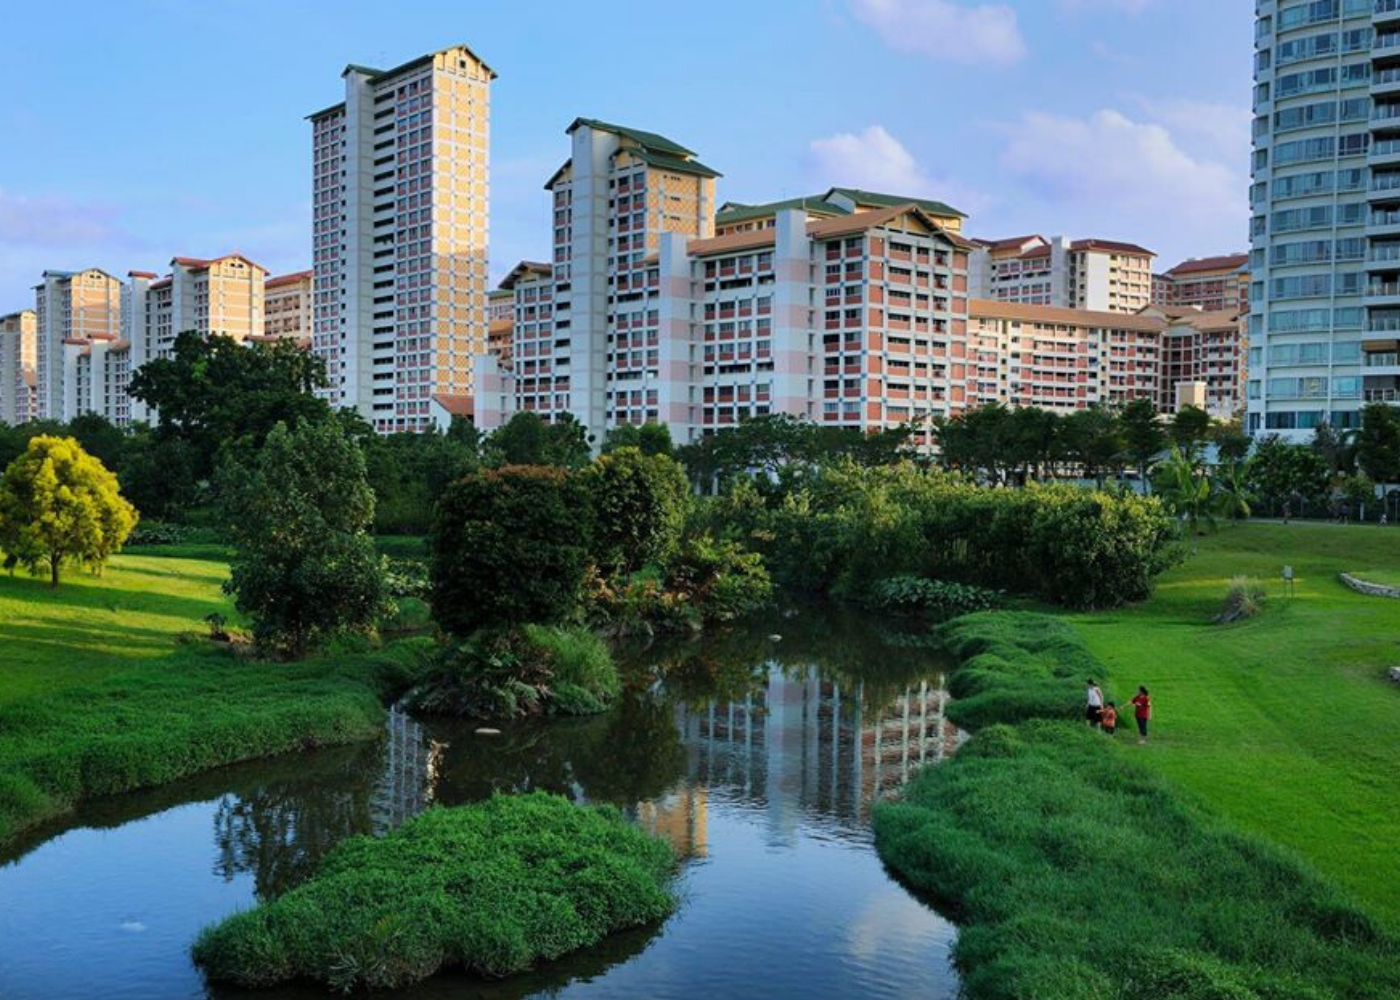 Things to do this weekend: Explore the green spaces of Singapore